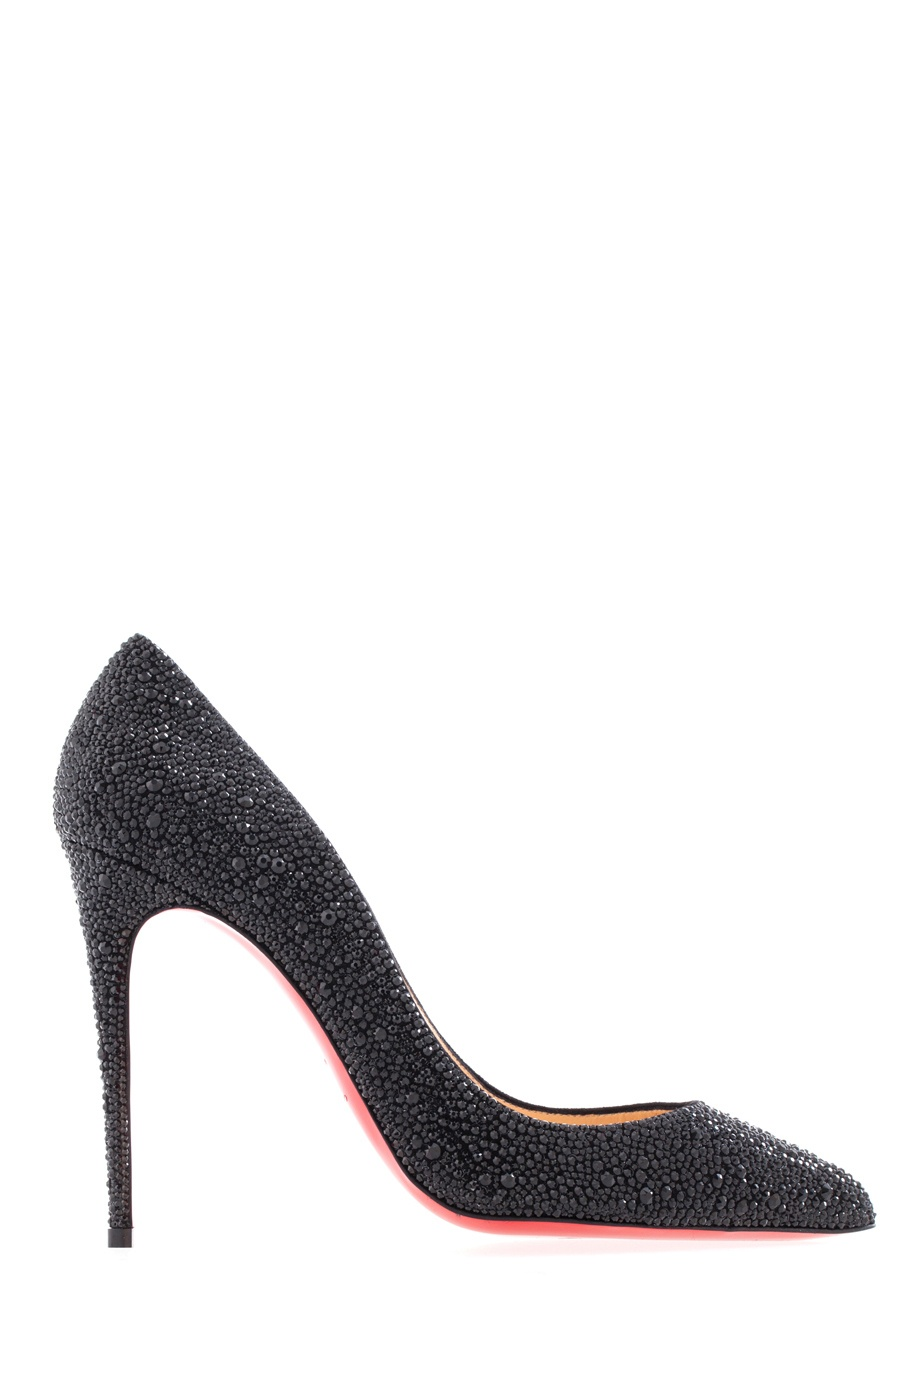 Кожаные туфли Pigalle Follies Strass 100 Christian Louboutin (фото)